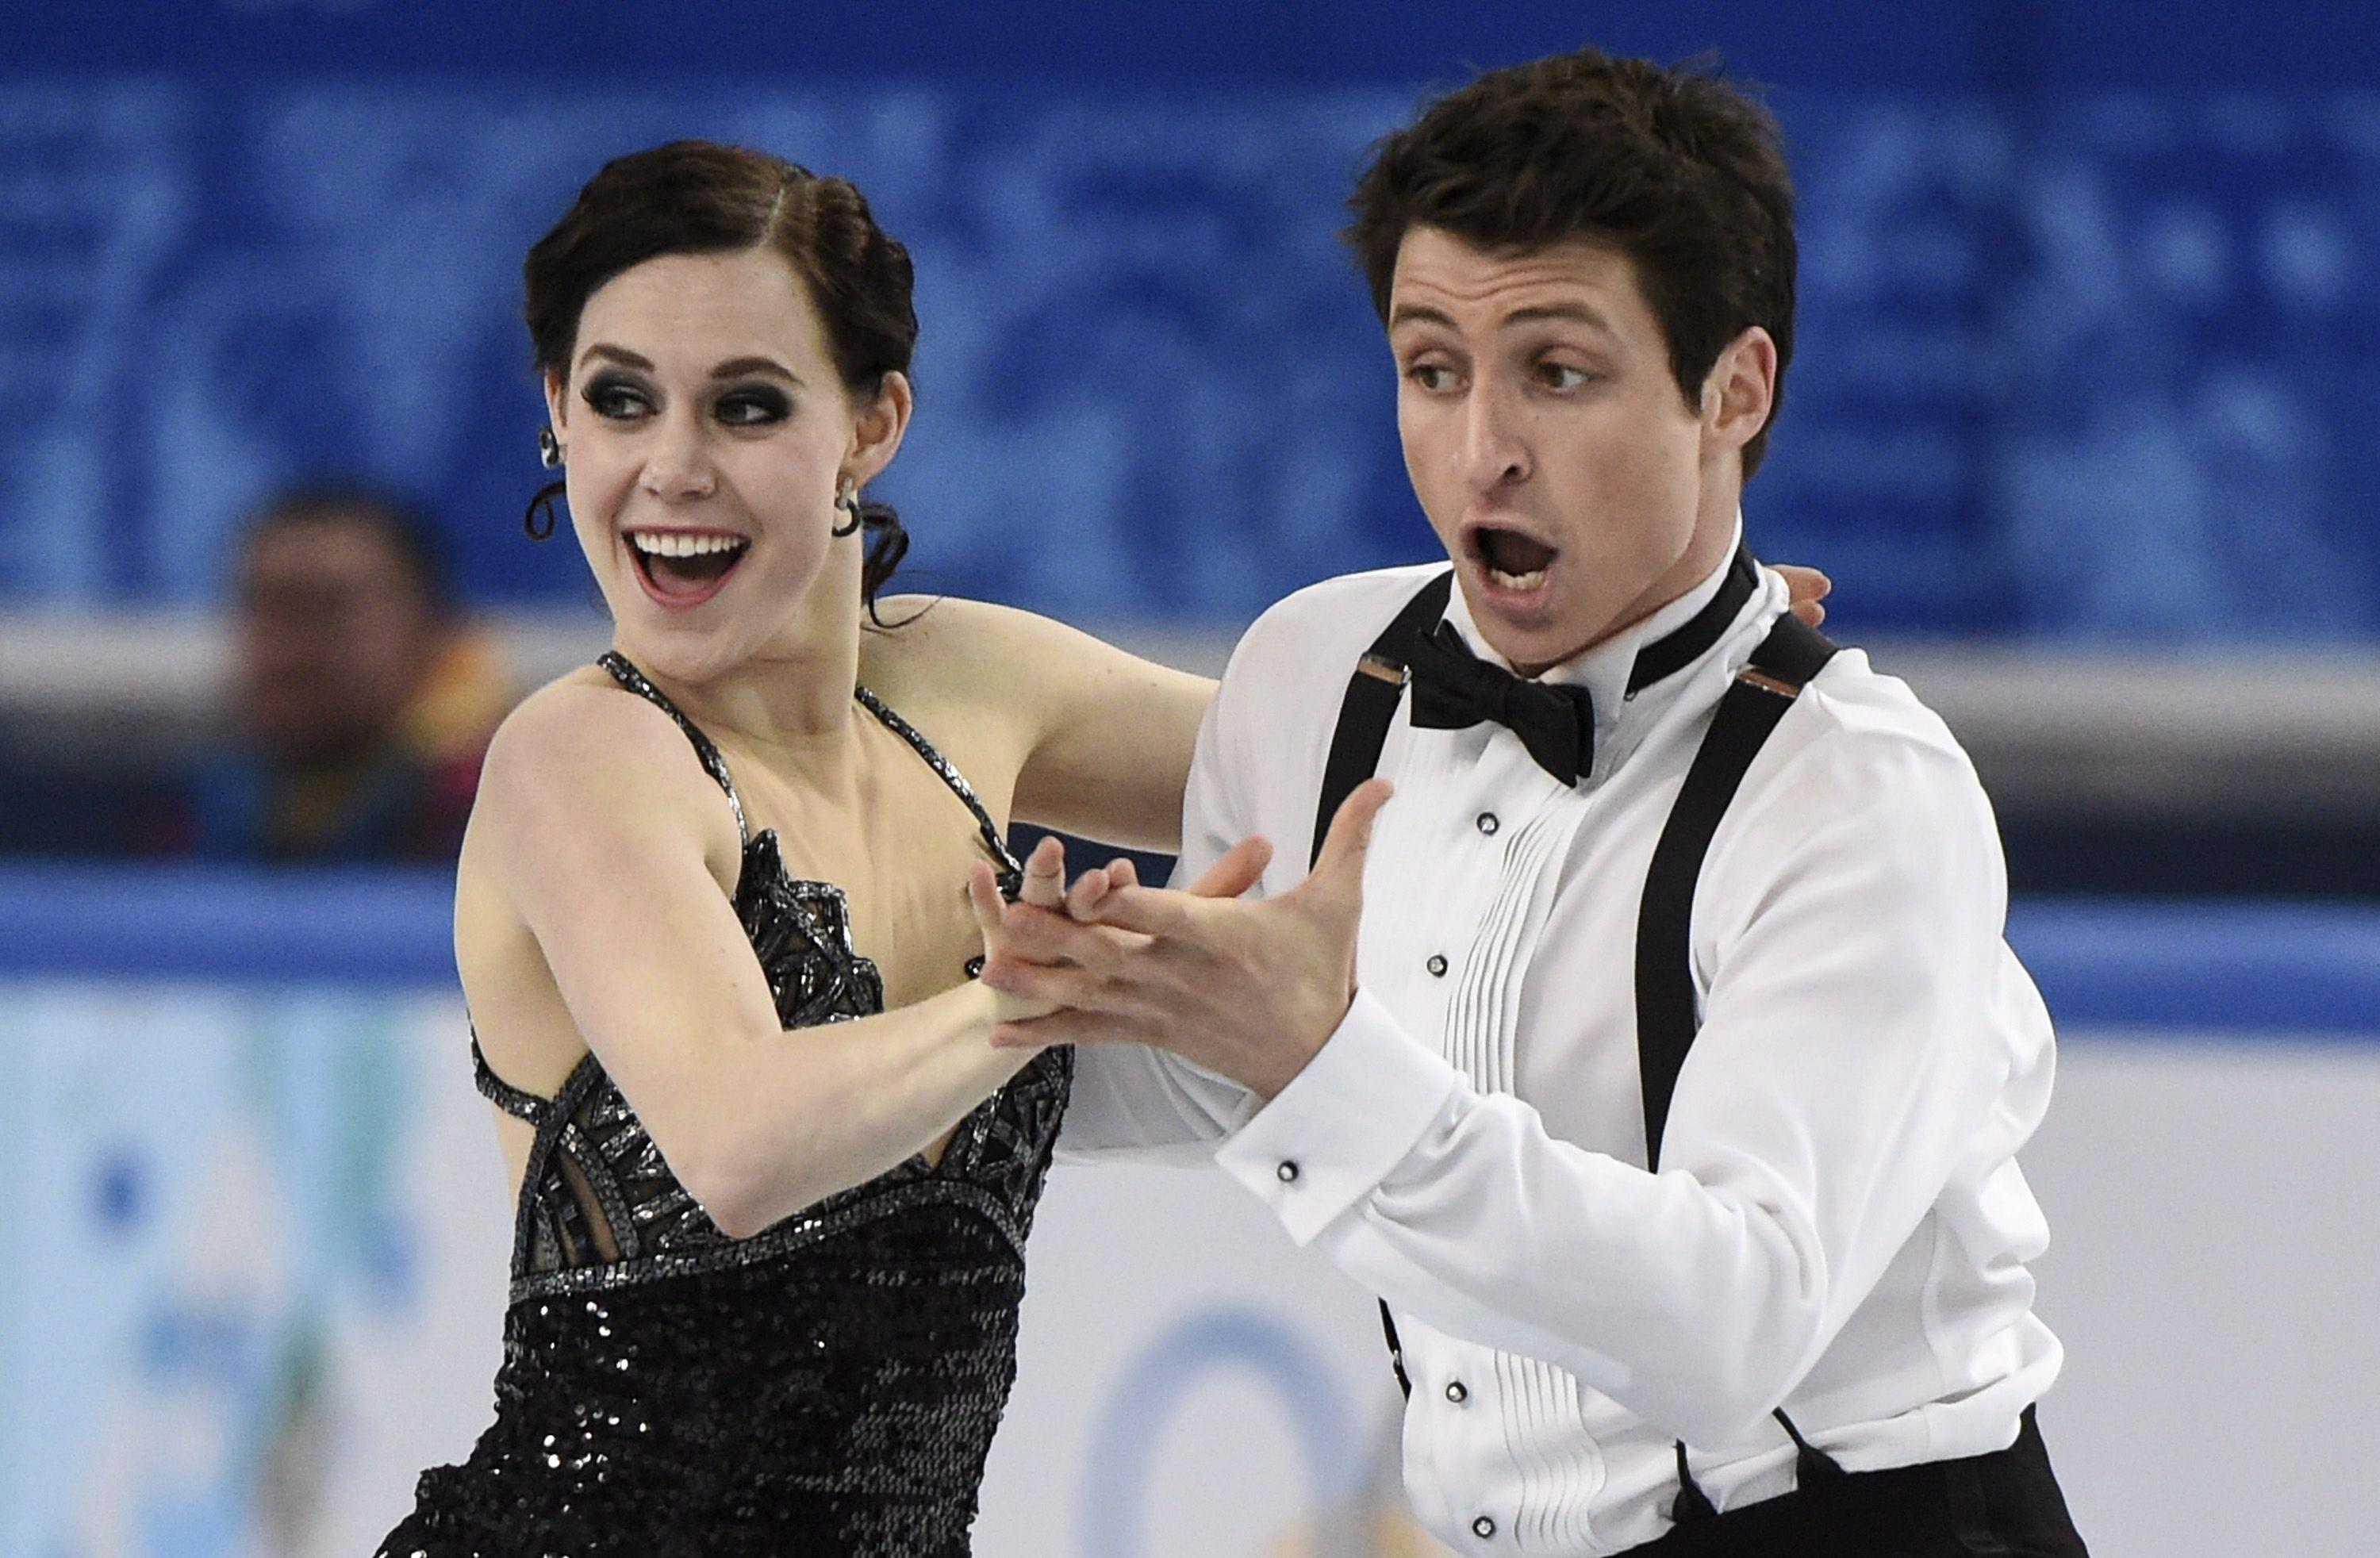 Holders of two silver medals at the Canadian figure skaters Tessa ...